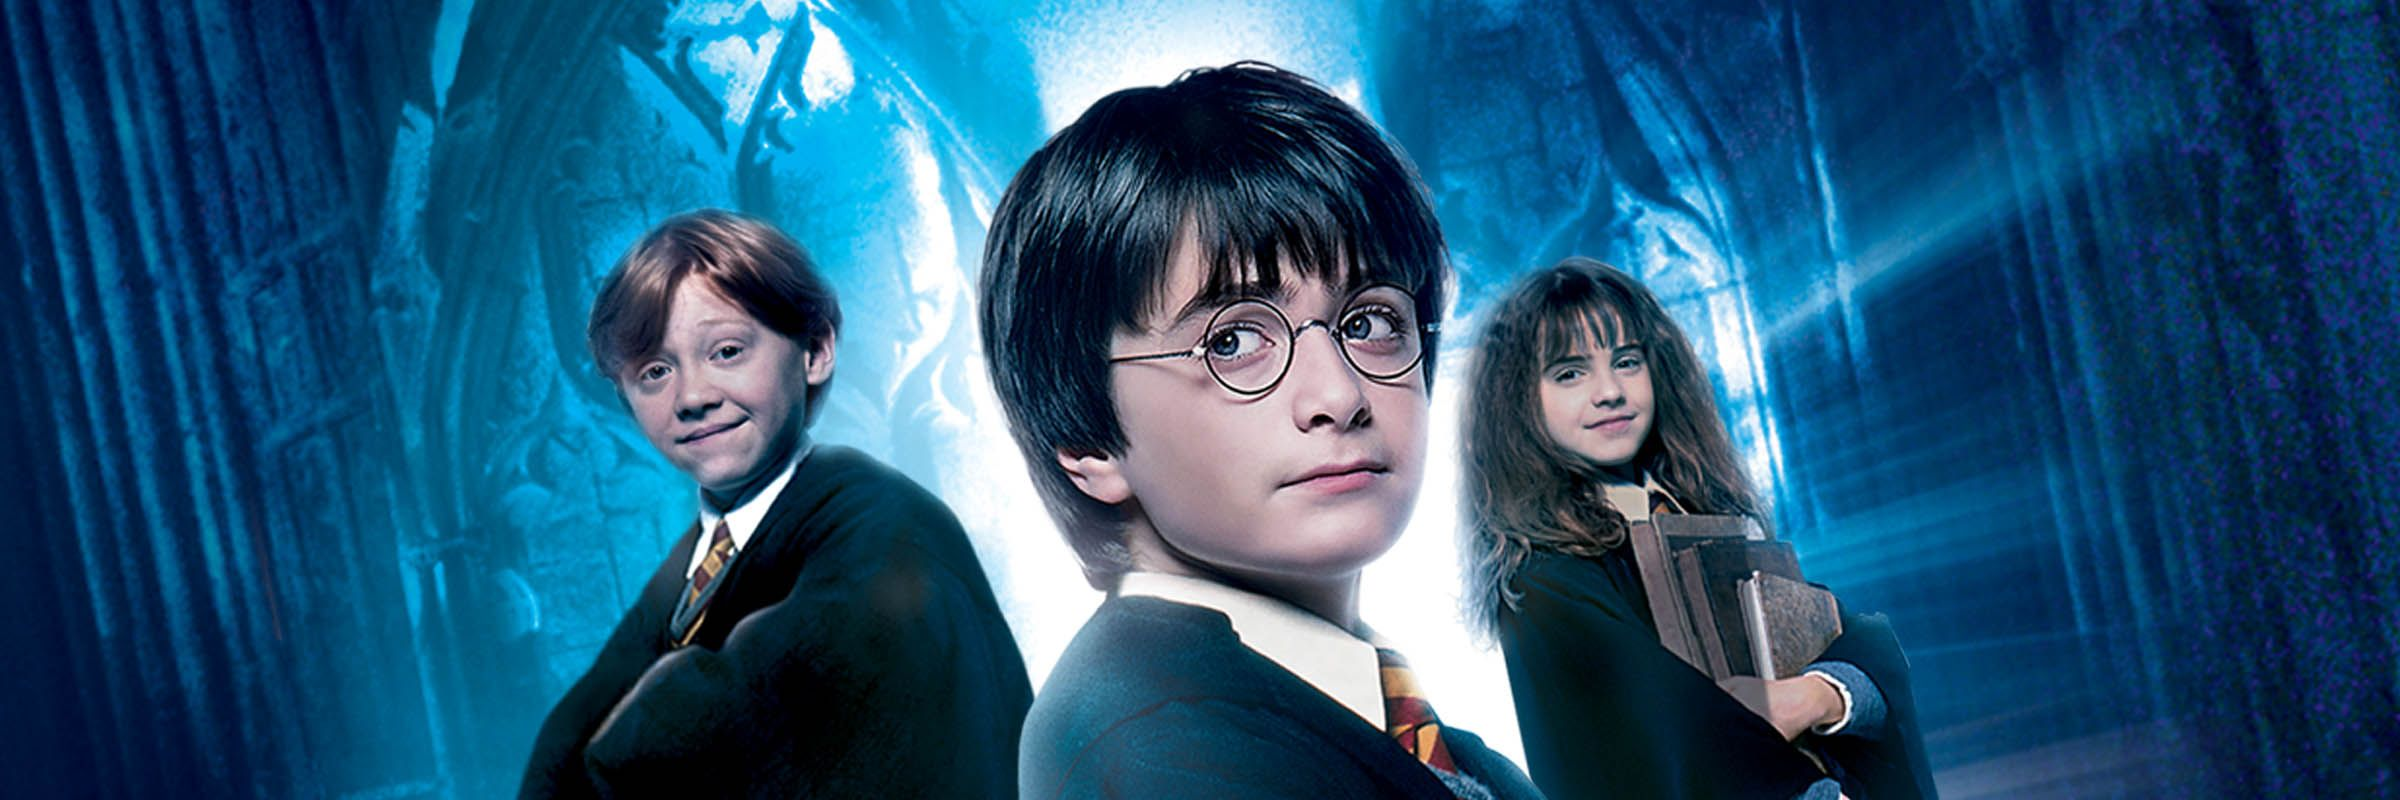 Harry Potter And The Sorcerer S Stone Trailer